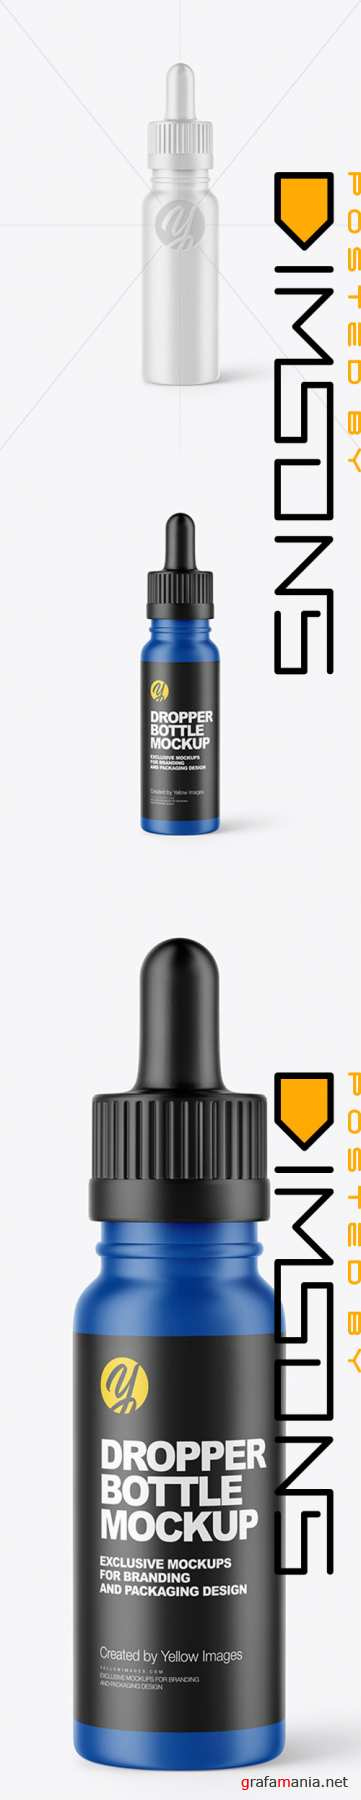 Matte Dropper Bottle Mockup 44890 TIF